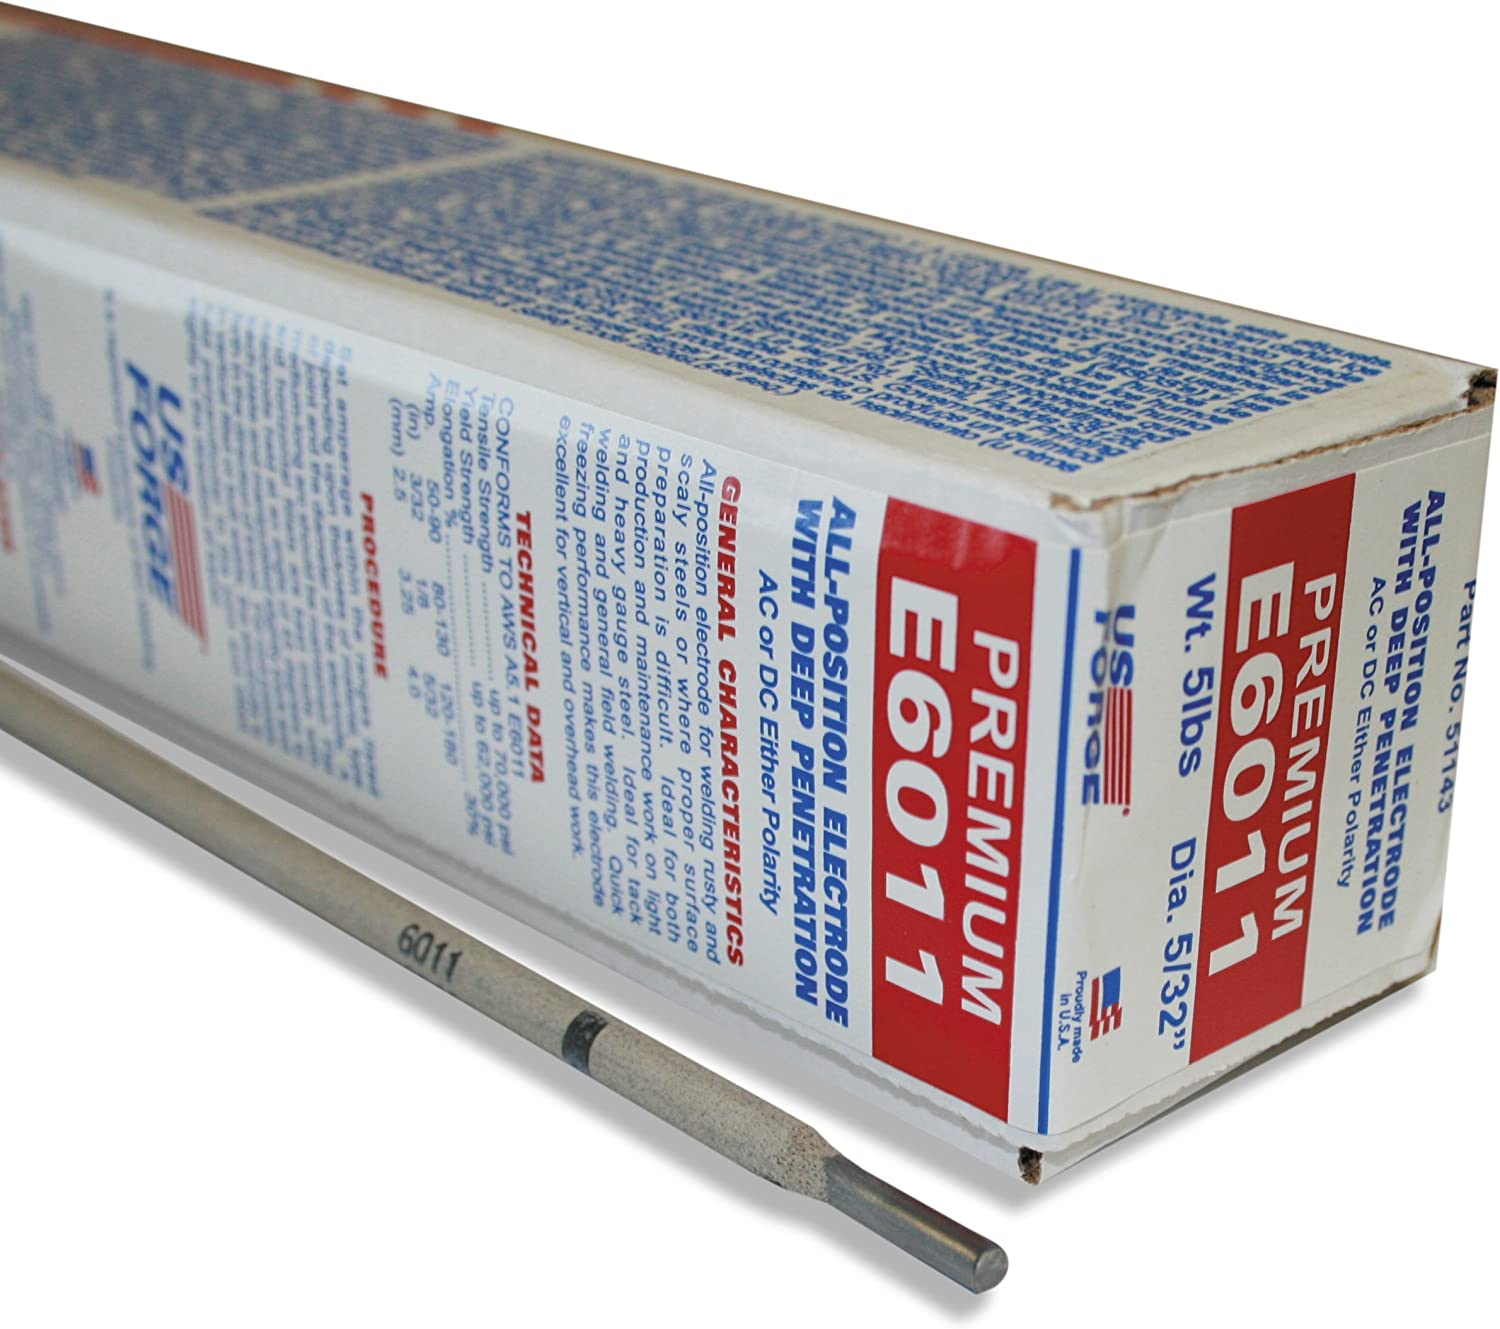 US Forge Welding sold Ranking TOP5 out Electrode E6011 5 14-Inch 5-Pound by Bo 32-Inch